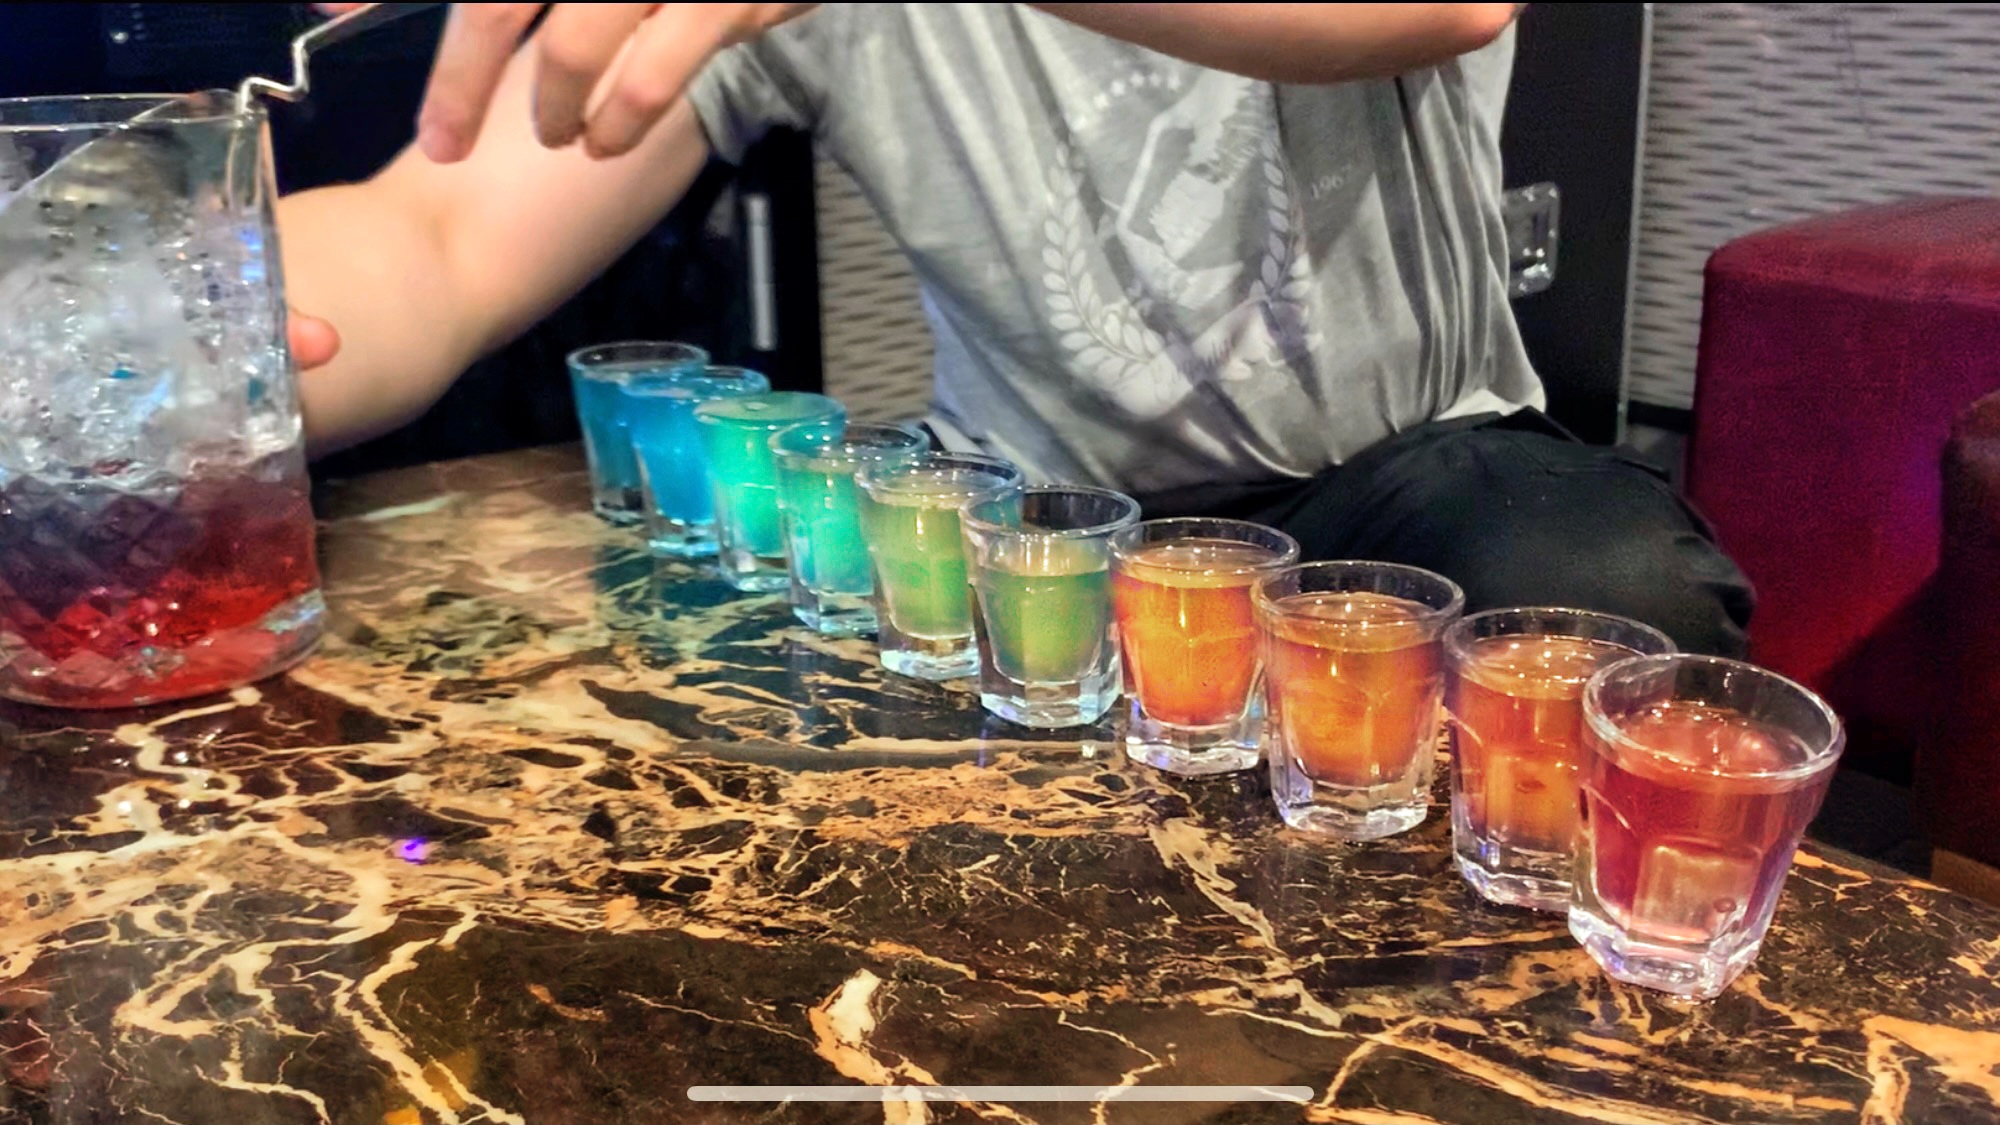 Rainbow shots at Queeraoke night.